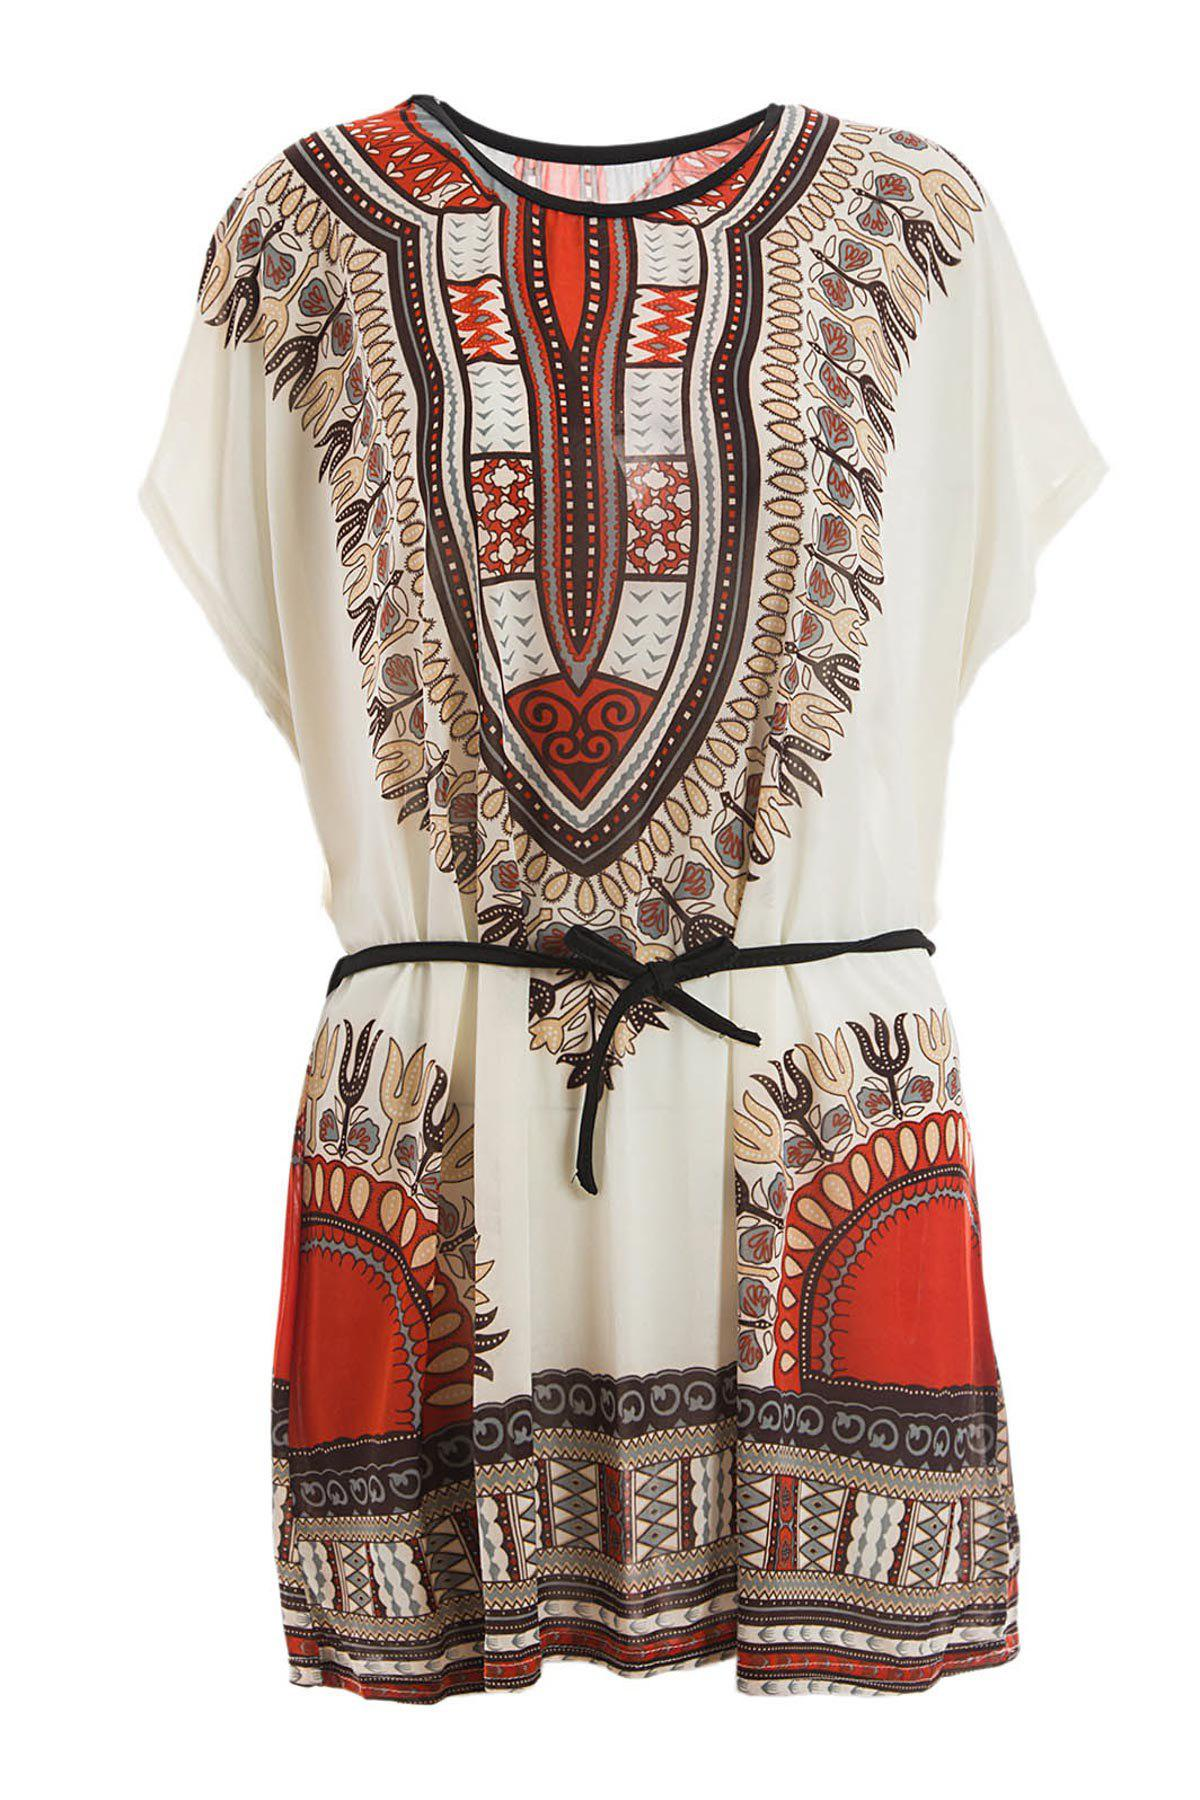 Batwing Sleeve Retro Style V-Neck Ethnic Pattern Dress For Women